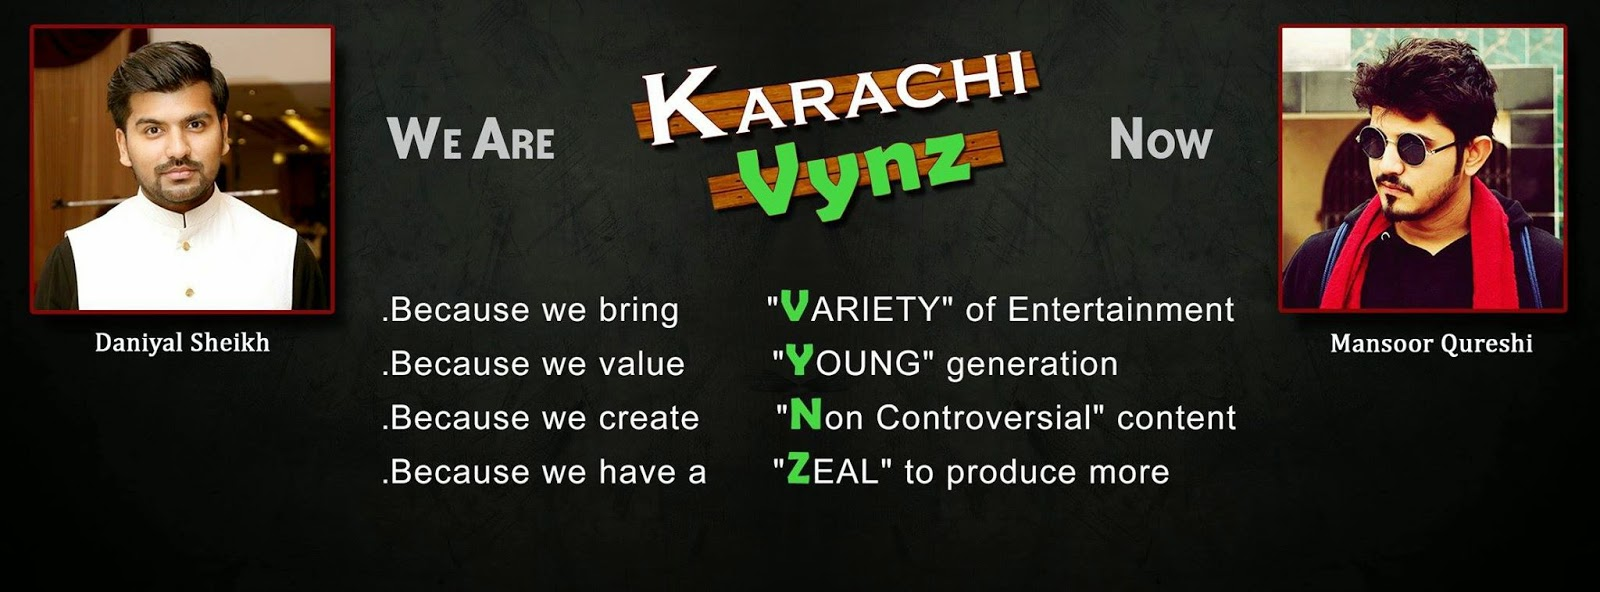 Exclusive Interview of Karachi Vynrz on Times of Youth